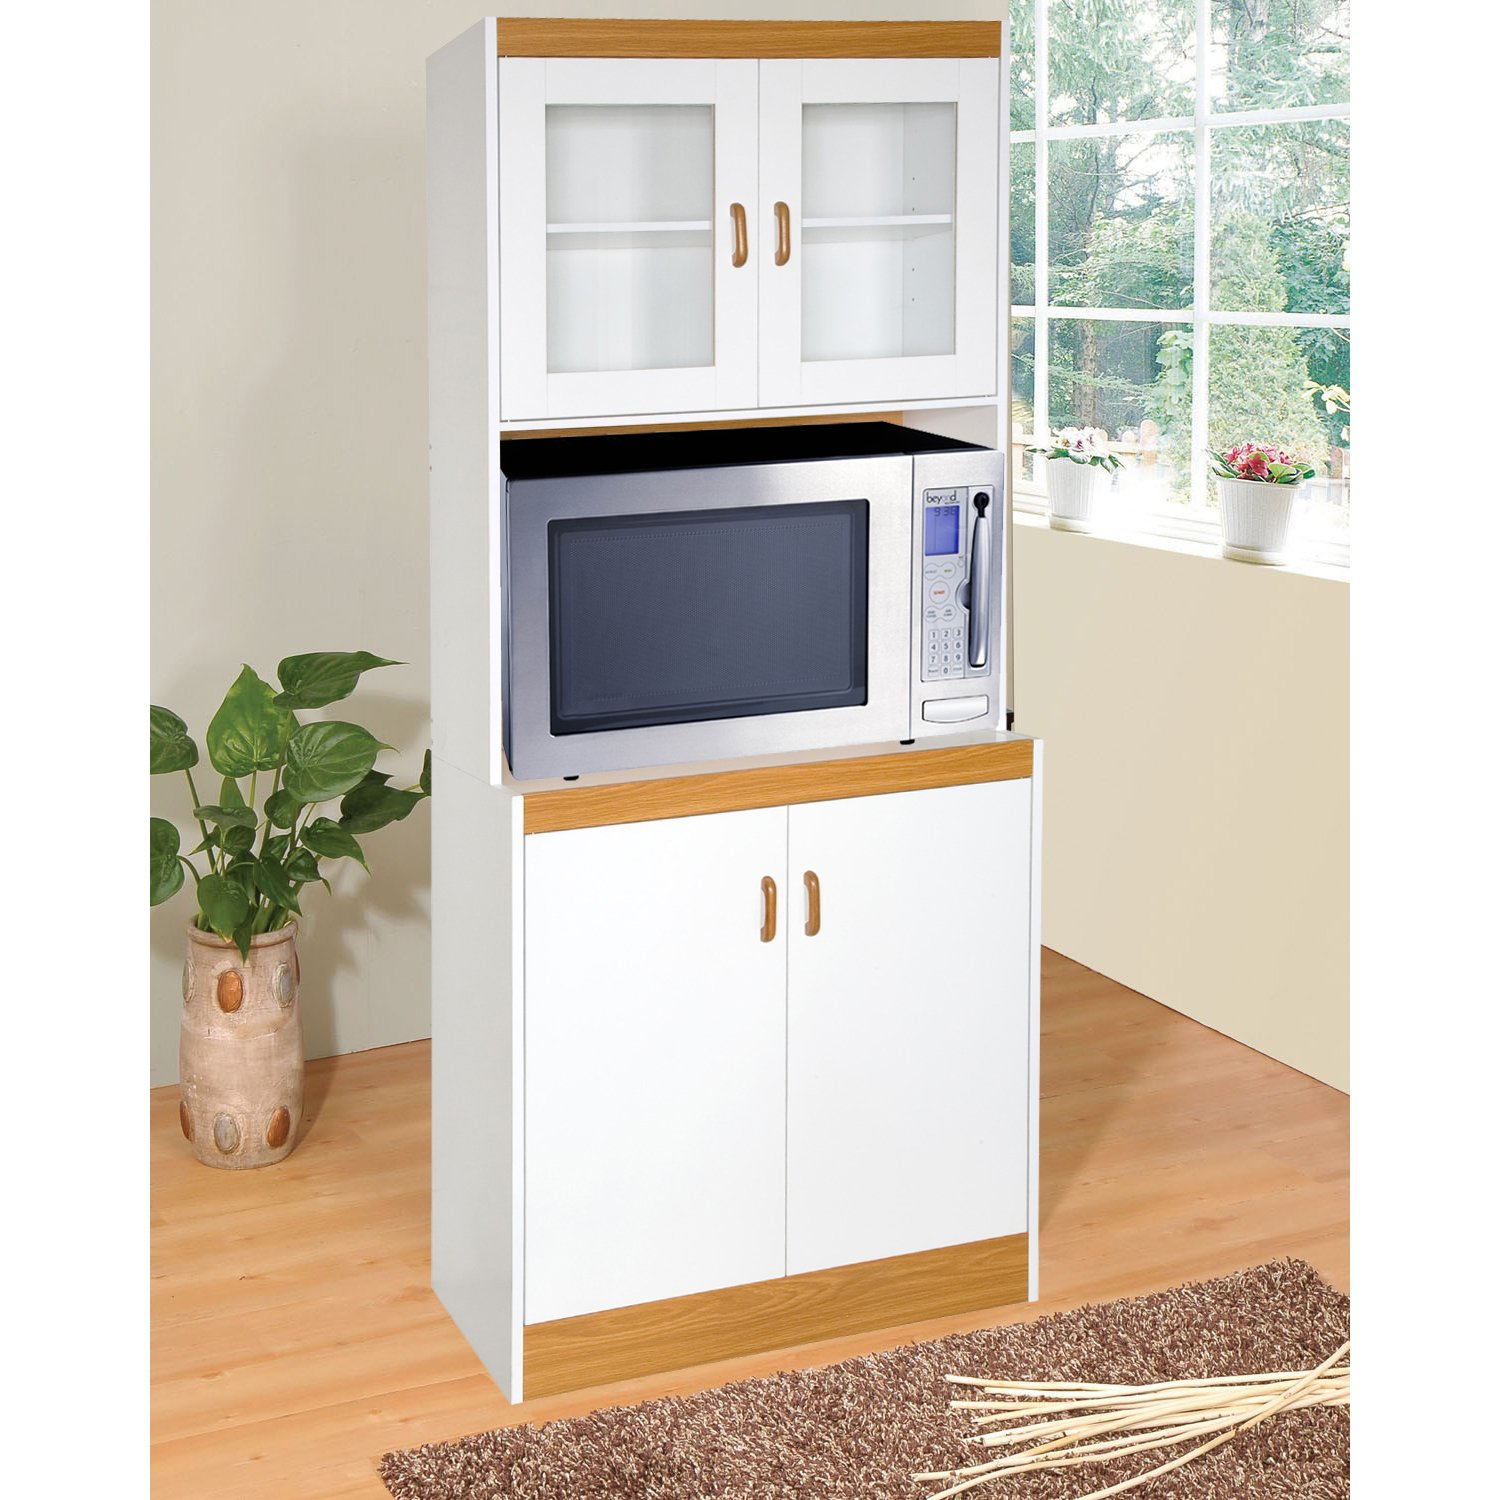 amazoncom home source industries 153brd tall kitchen microwave cart cabinets shelf and glass doors white with light wood trim kitchen islands - Cabinet With Glass Doors